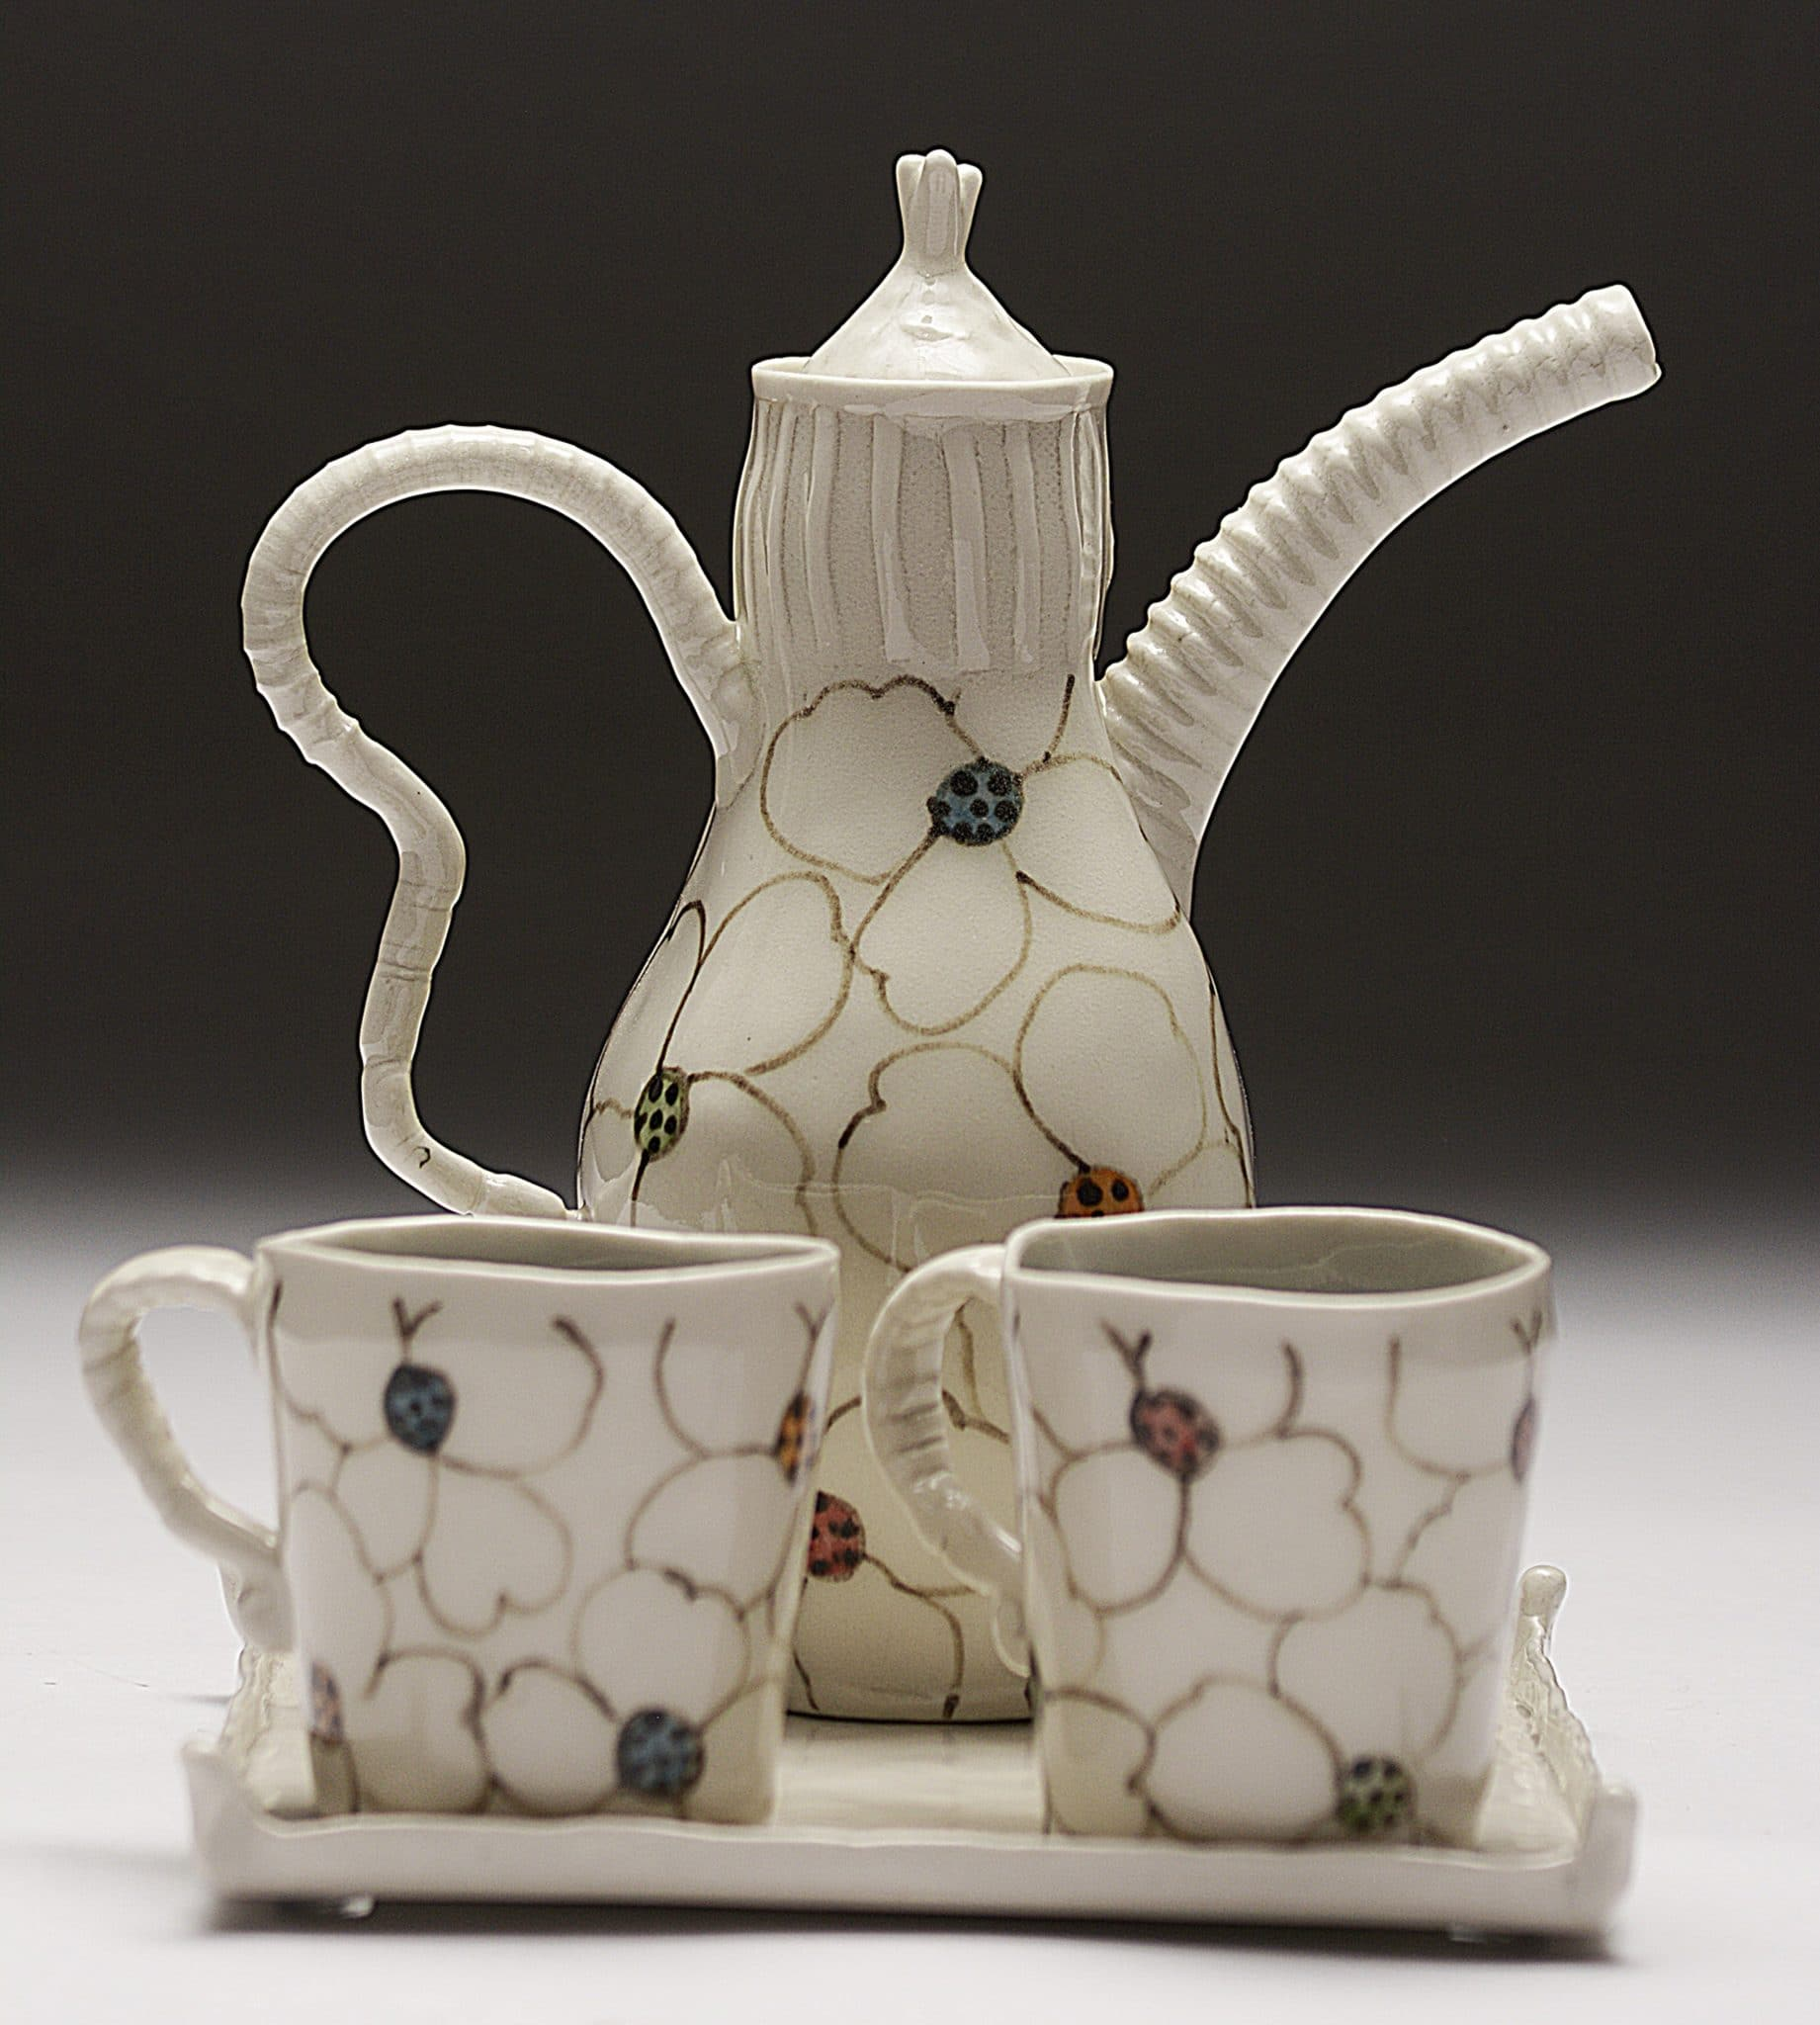 Jerry Bennett - Whitefloral Tea Set